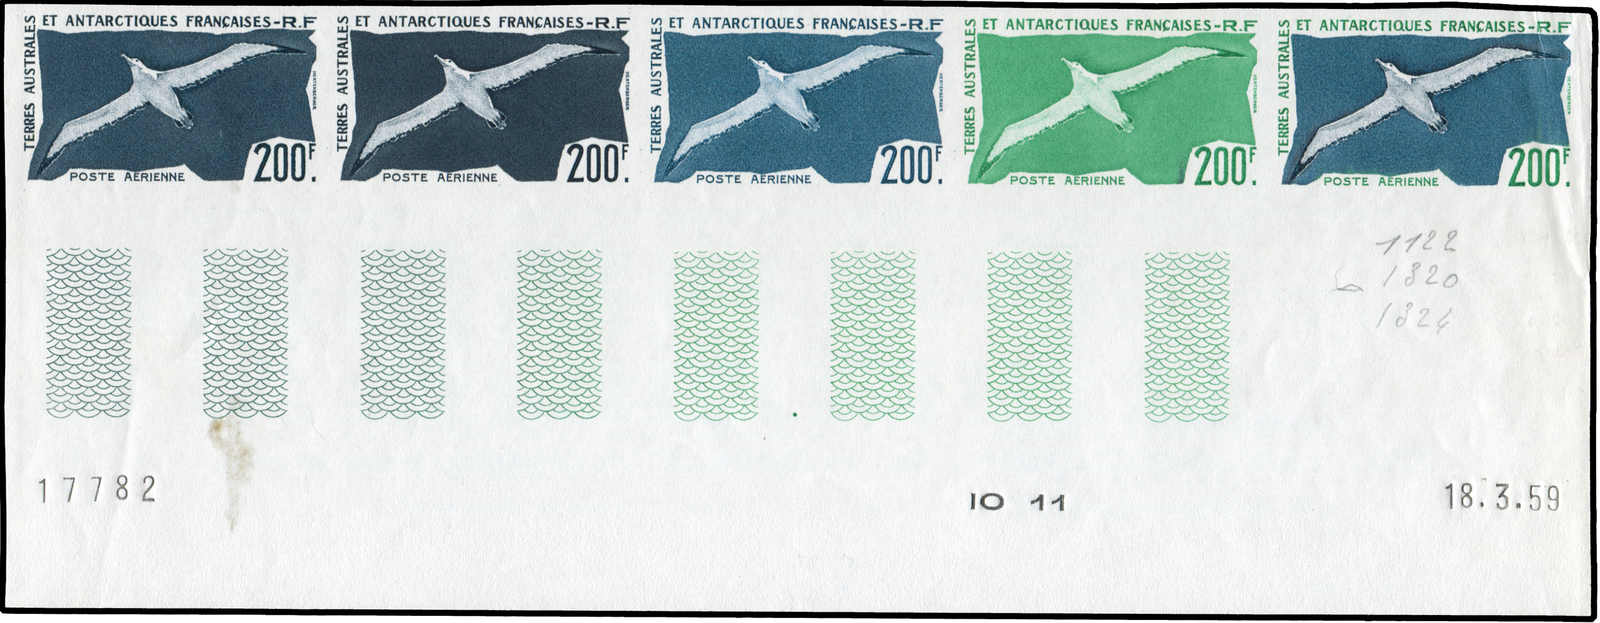 Lot 4292 - Worldwide A-Z French Antarctic Territory -  Auktionshaus Schlegel 26 Public Auction